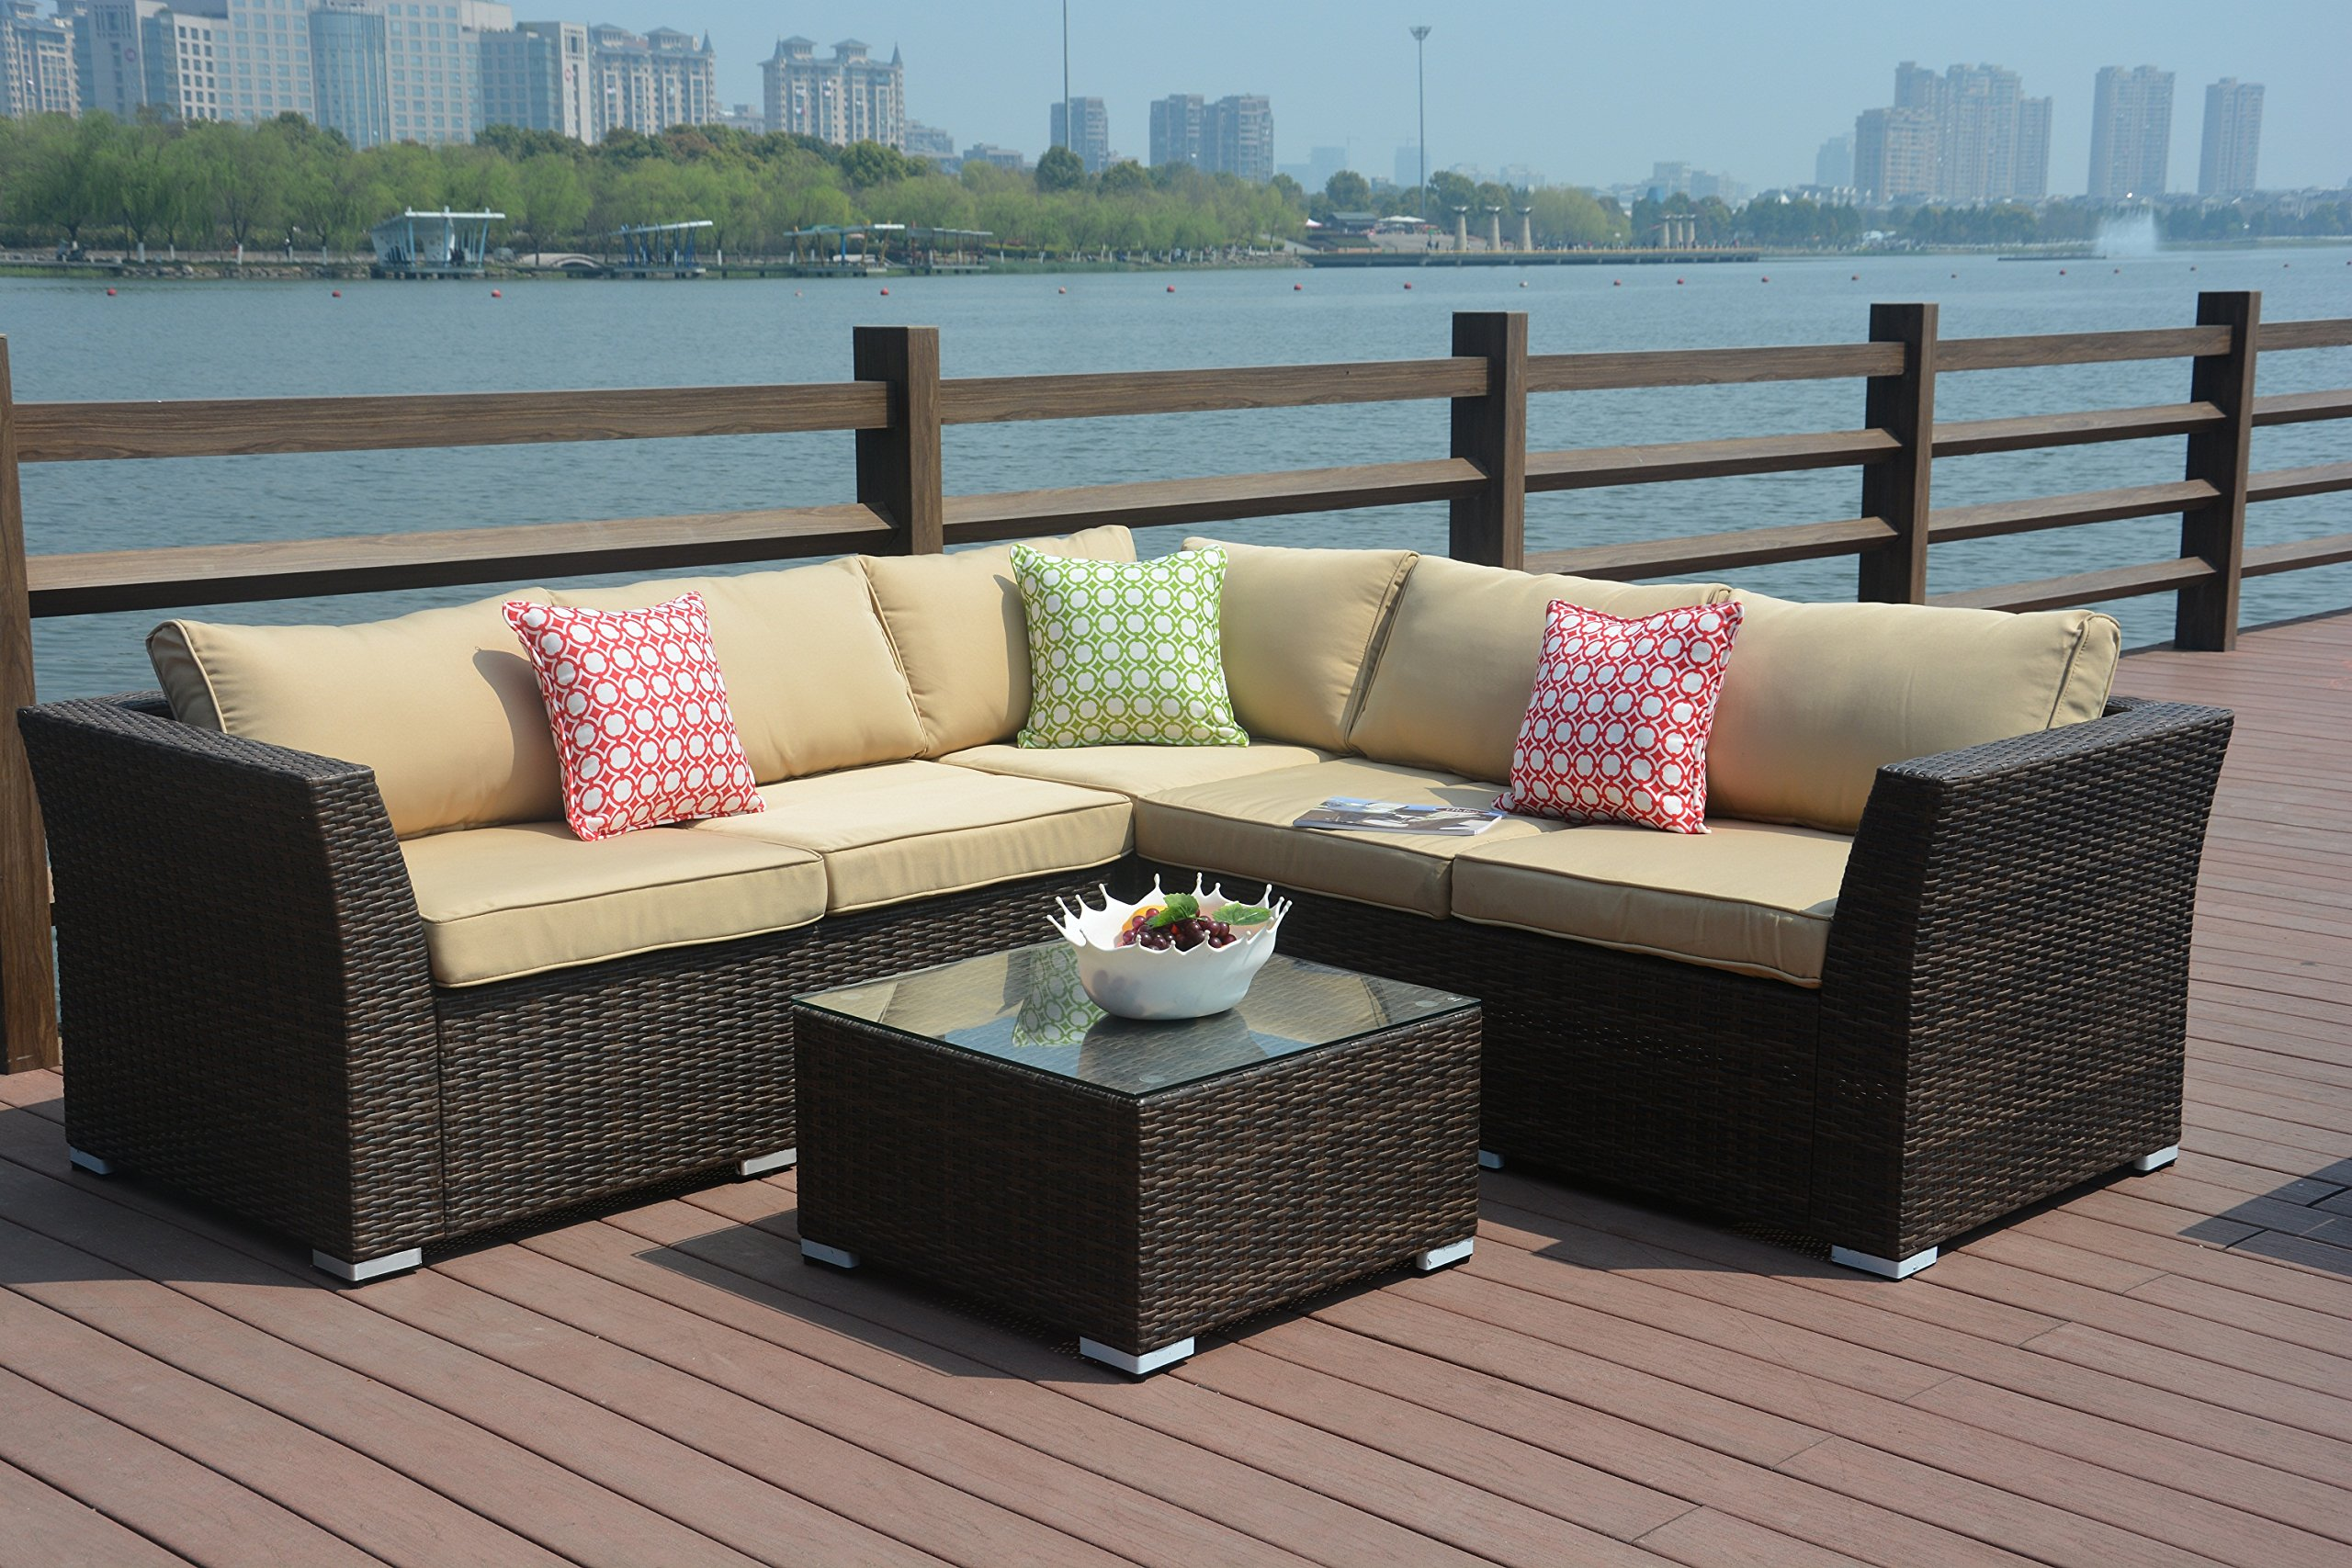 Get Quotations Direct Wicker 4pc Patio Sectional Furniture Pe Rattan Sofa Set Deck Couch Outdoor